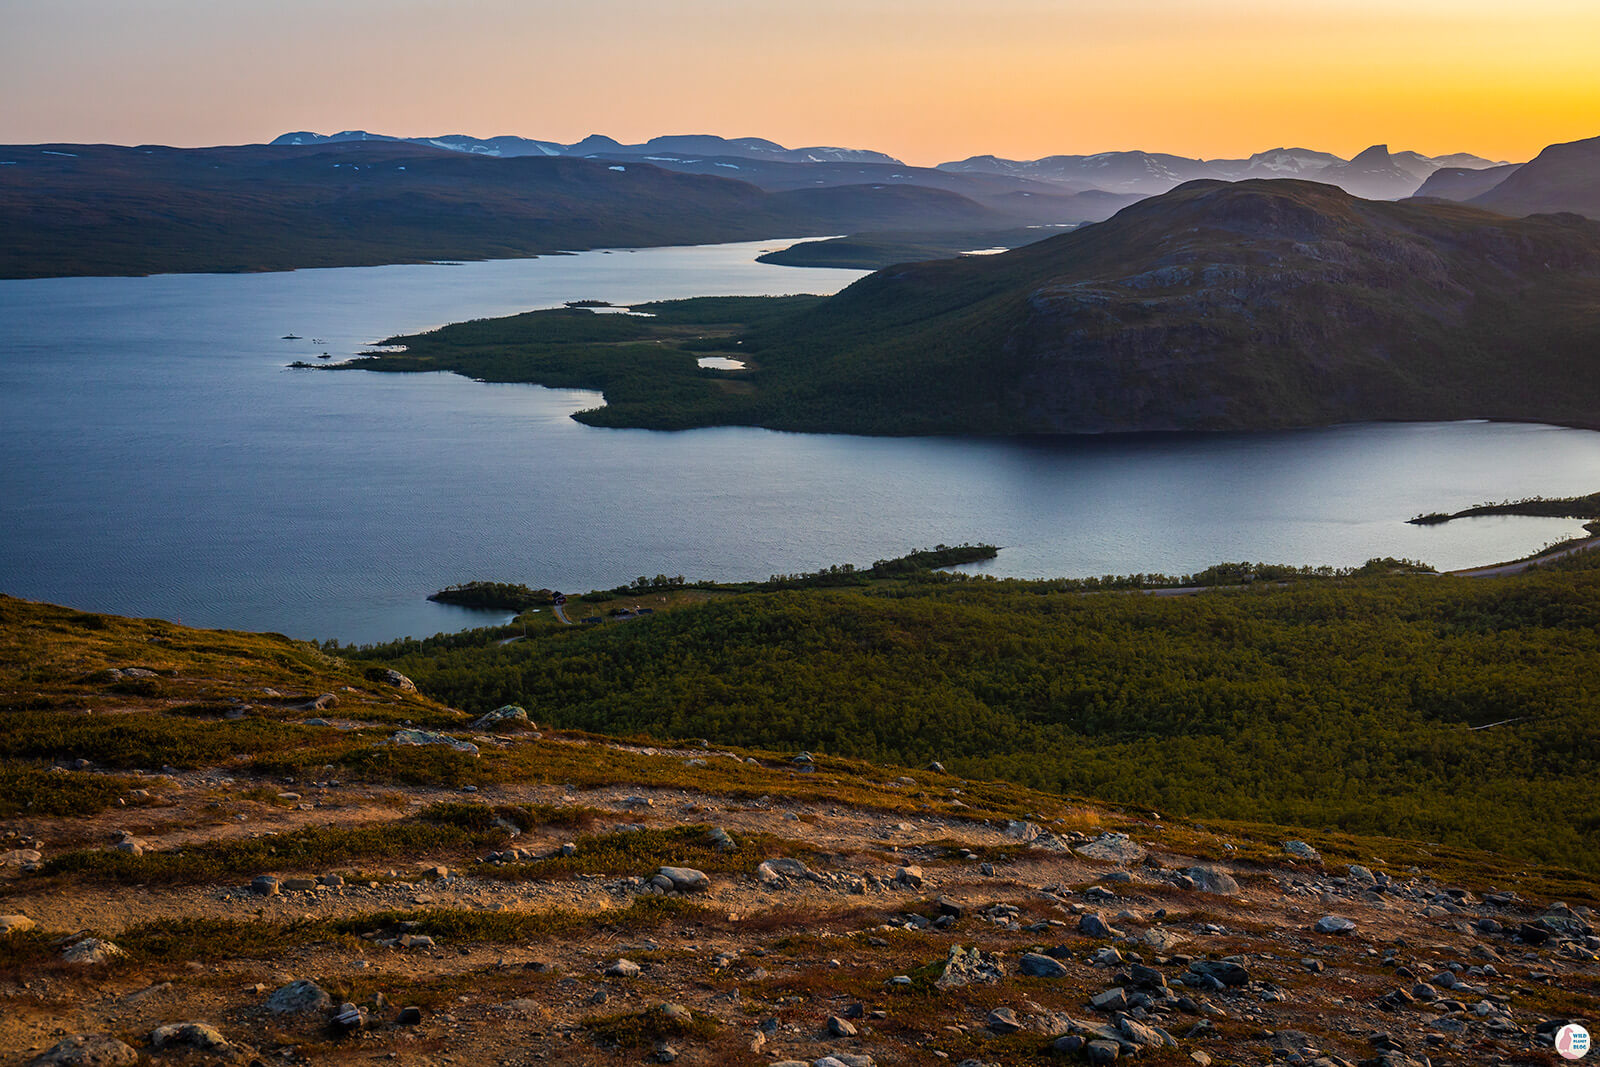 View from Saana hiking trail, Kilpisjärvi, Lapland, Finland